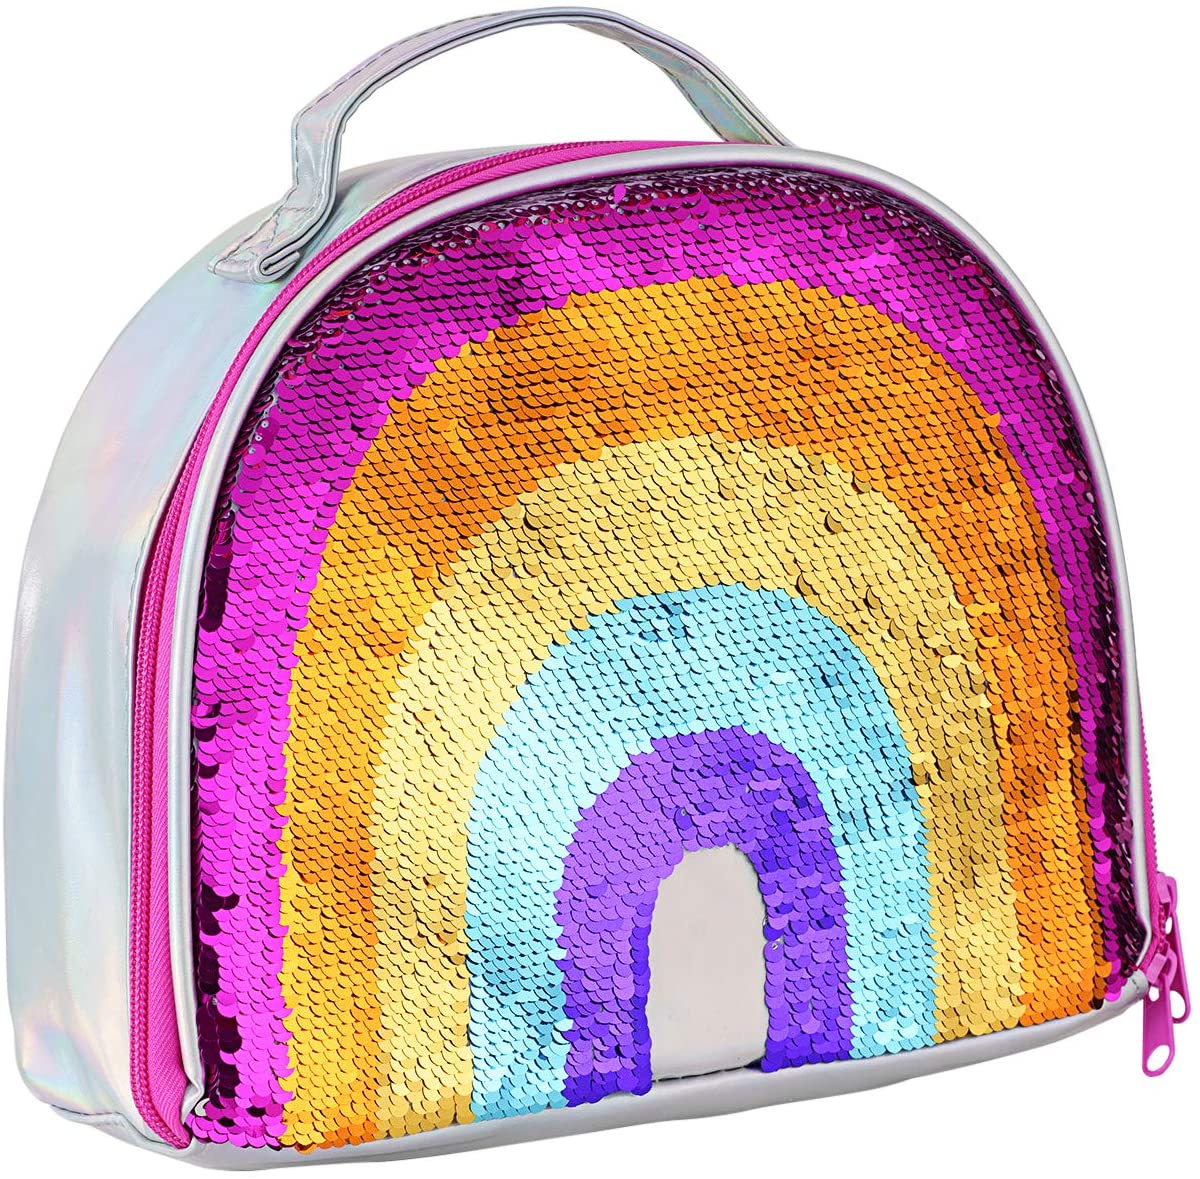 Locisne Insulated Mermaid Lunch Box, Reversible Sequin Lunch Tote Bag, Handheld Durable Thermal Reusable School Lunch Tote Glitter, Perfect for Working Women or Kids Girls Boy Outdoor Picnic (Rainbow)